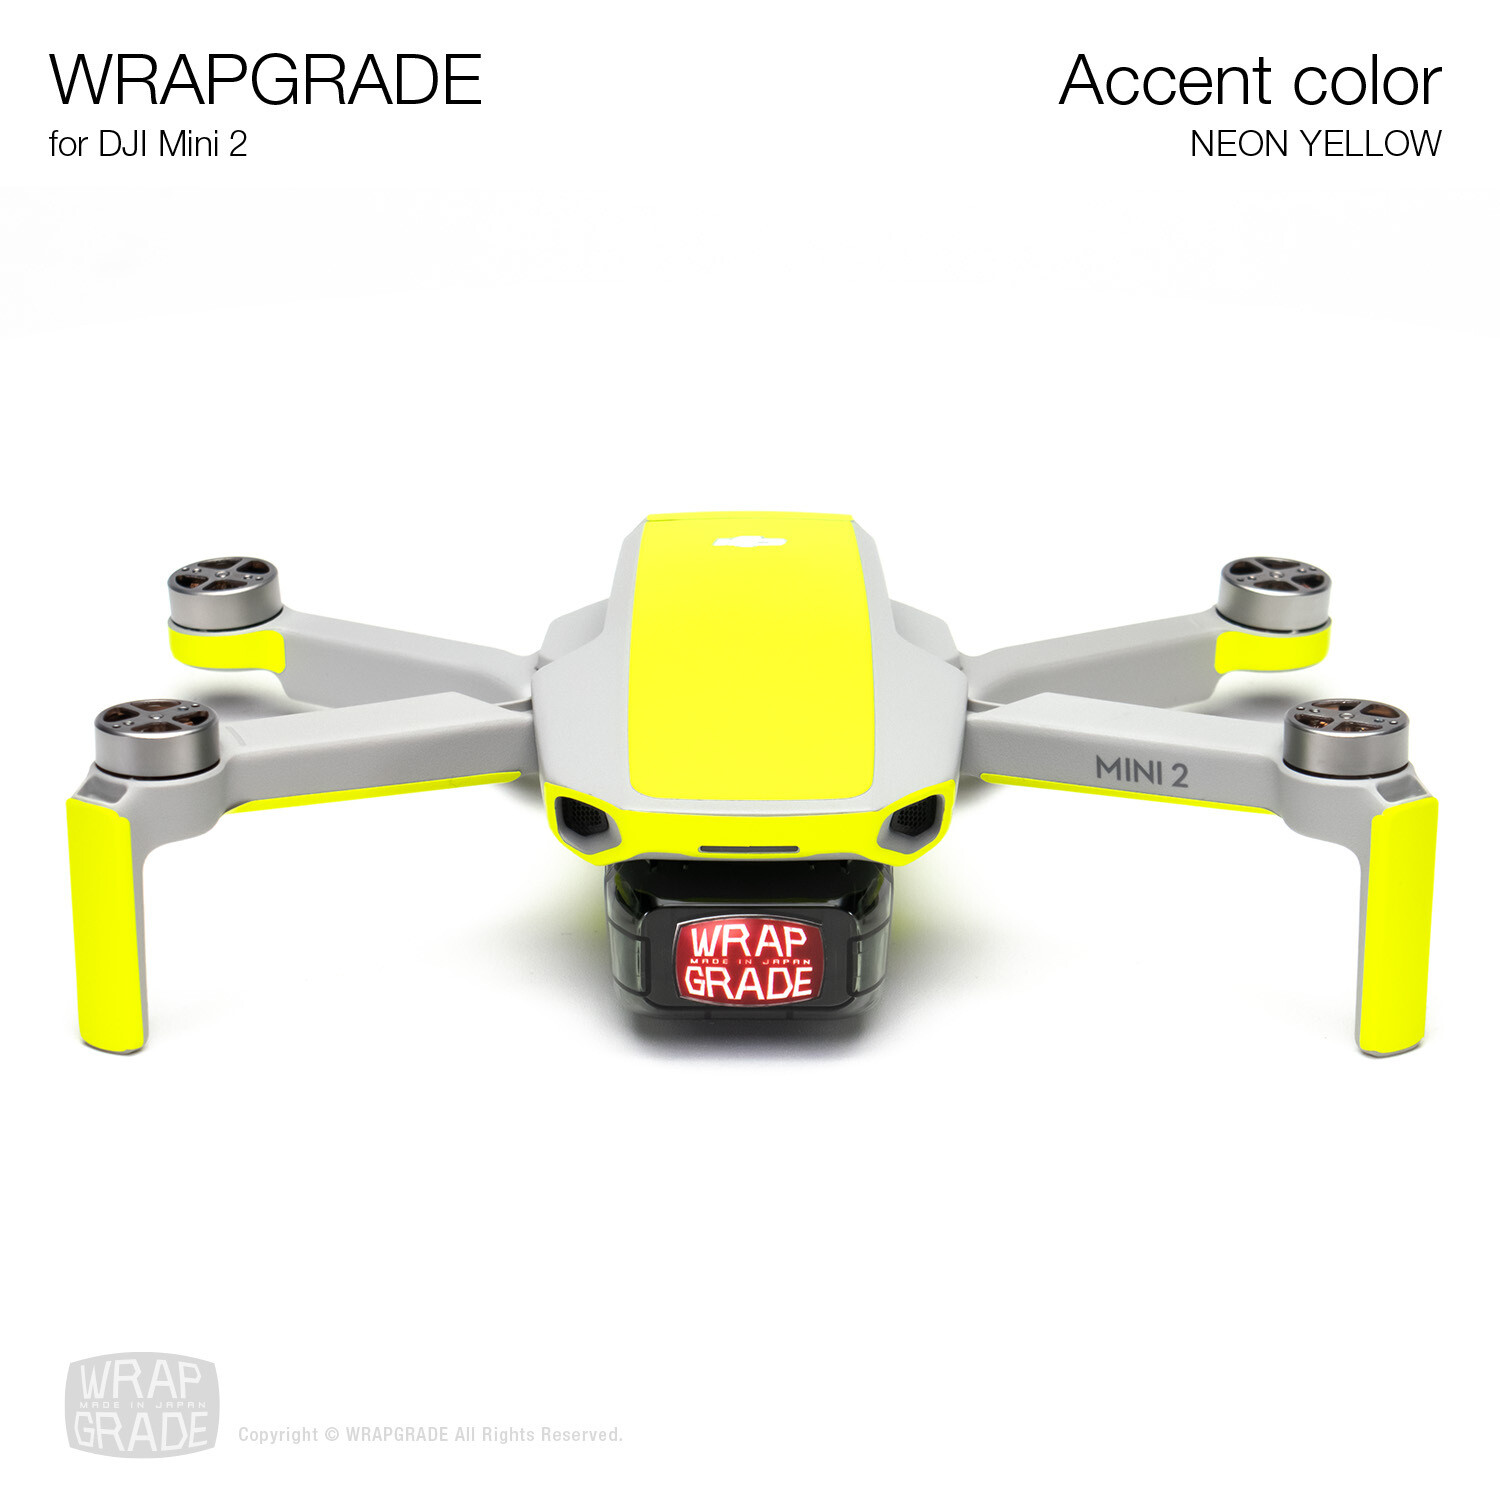 Wrapgrade Poly Skin for DJI Mini 2 | Accent color (NEON YELLOW)